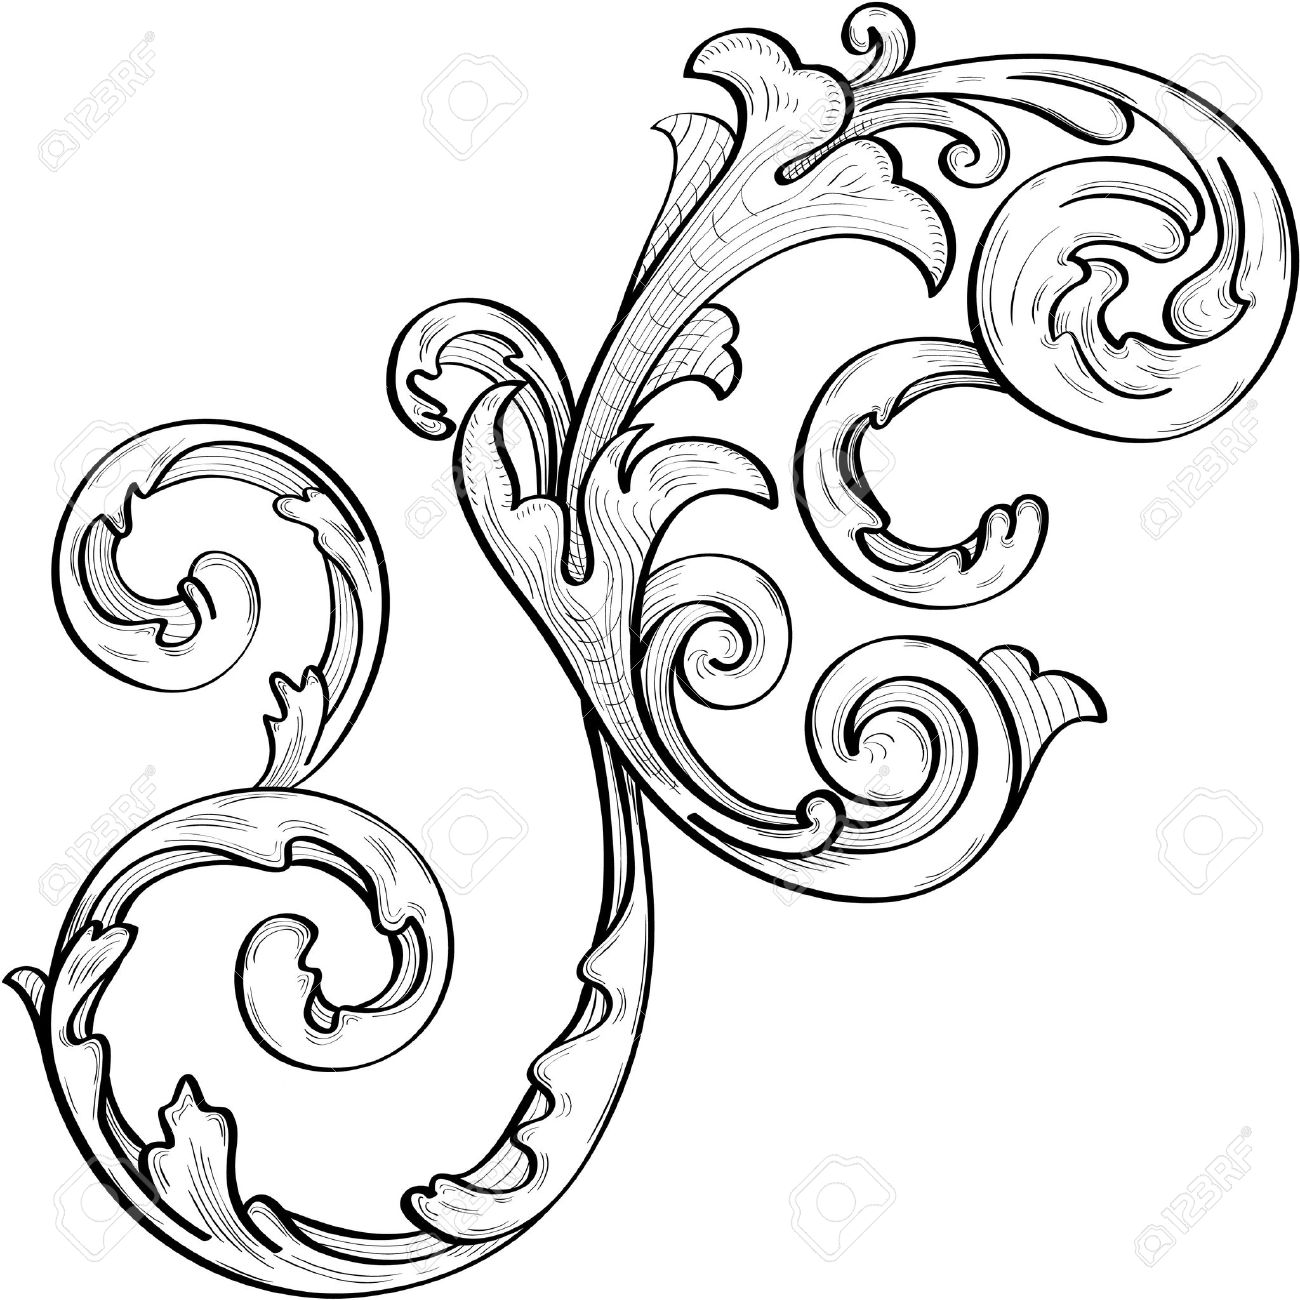 Engraving clipart acanthus leaf Royalty Royalty Nice Leaves Vectors